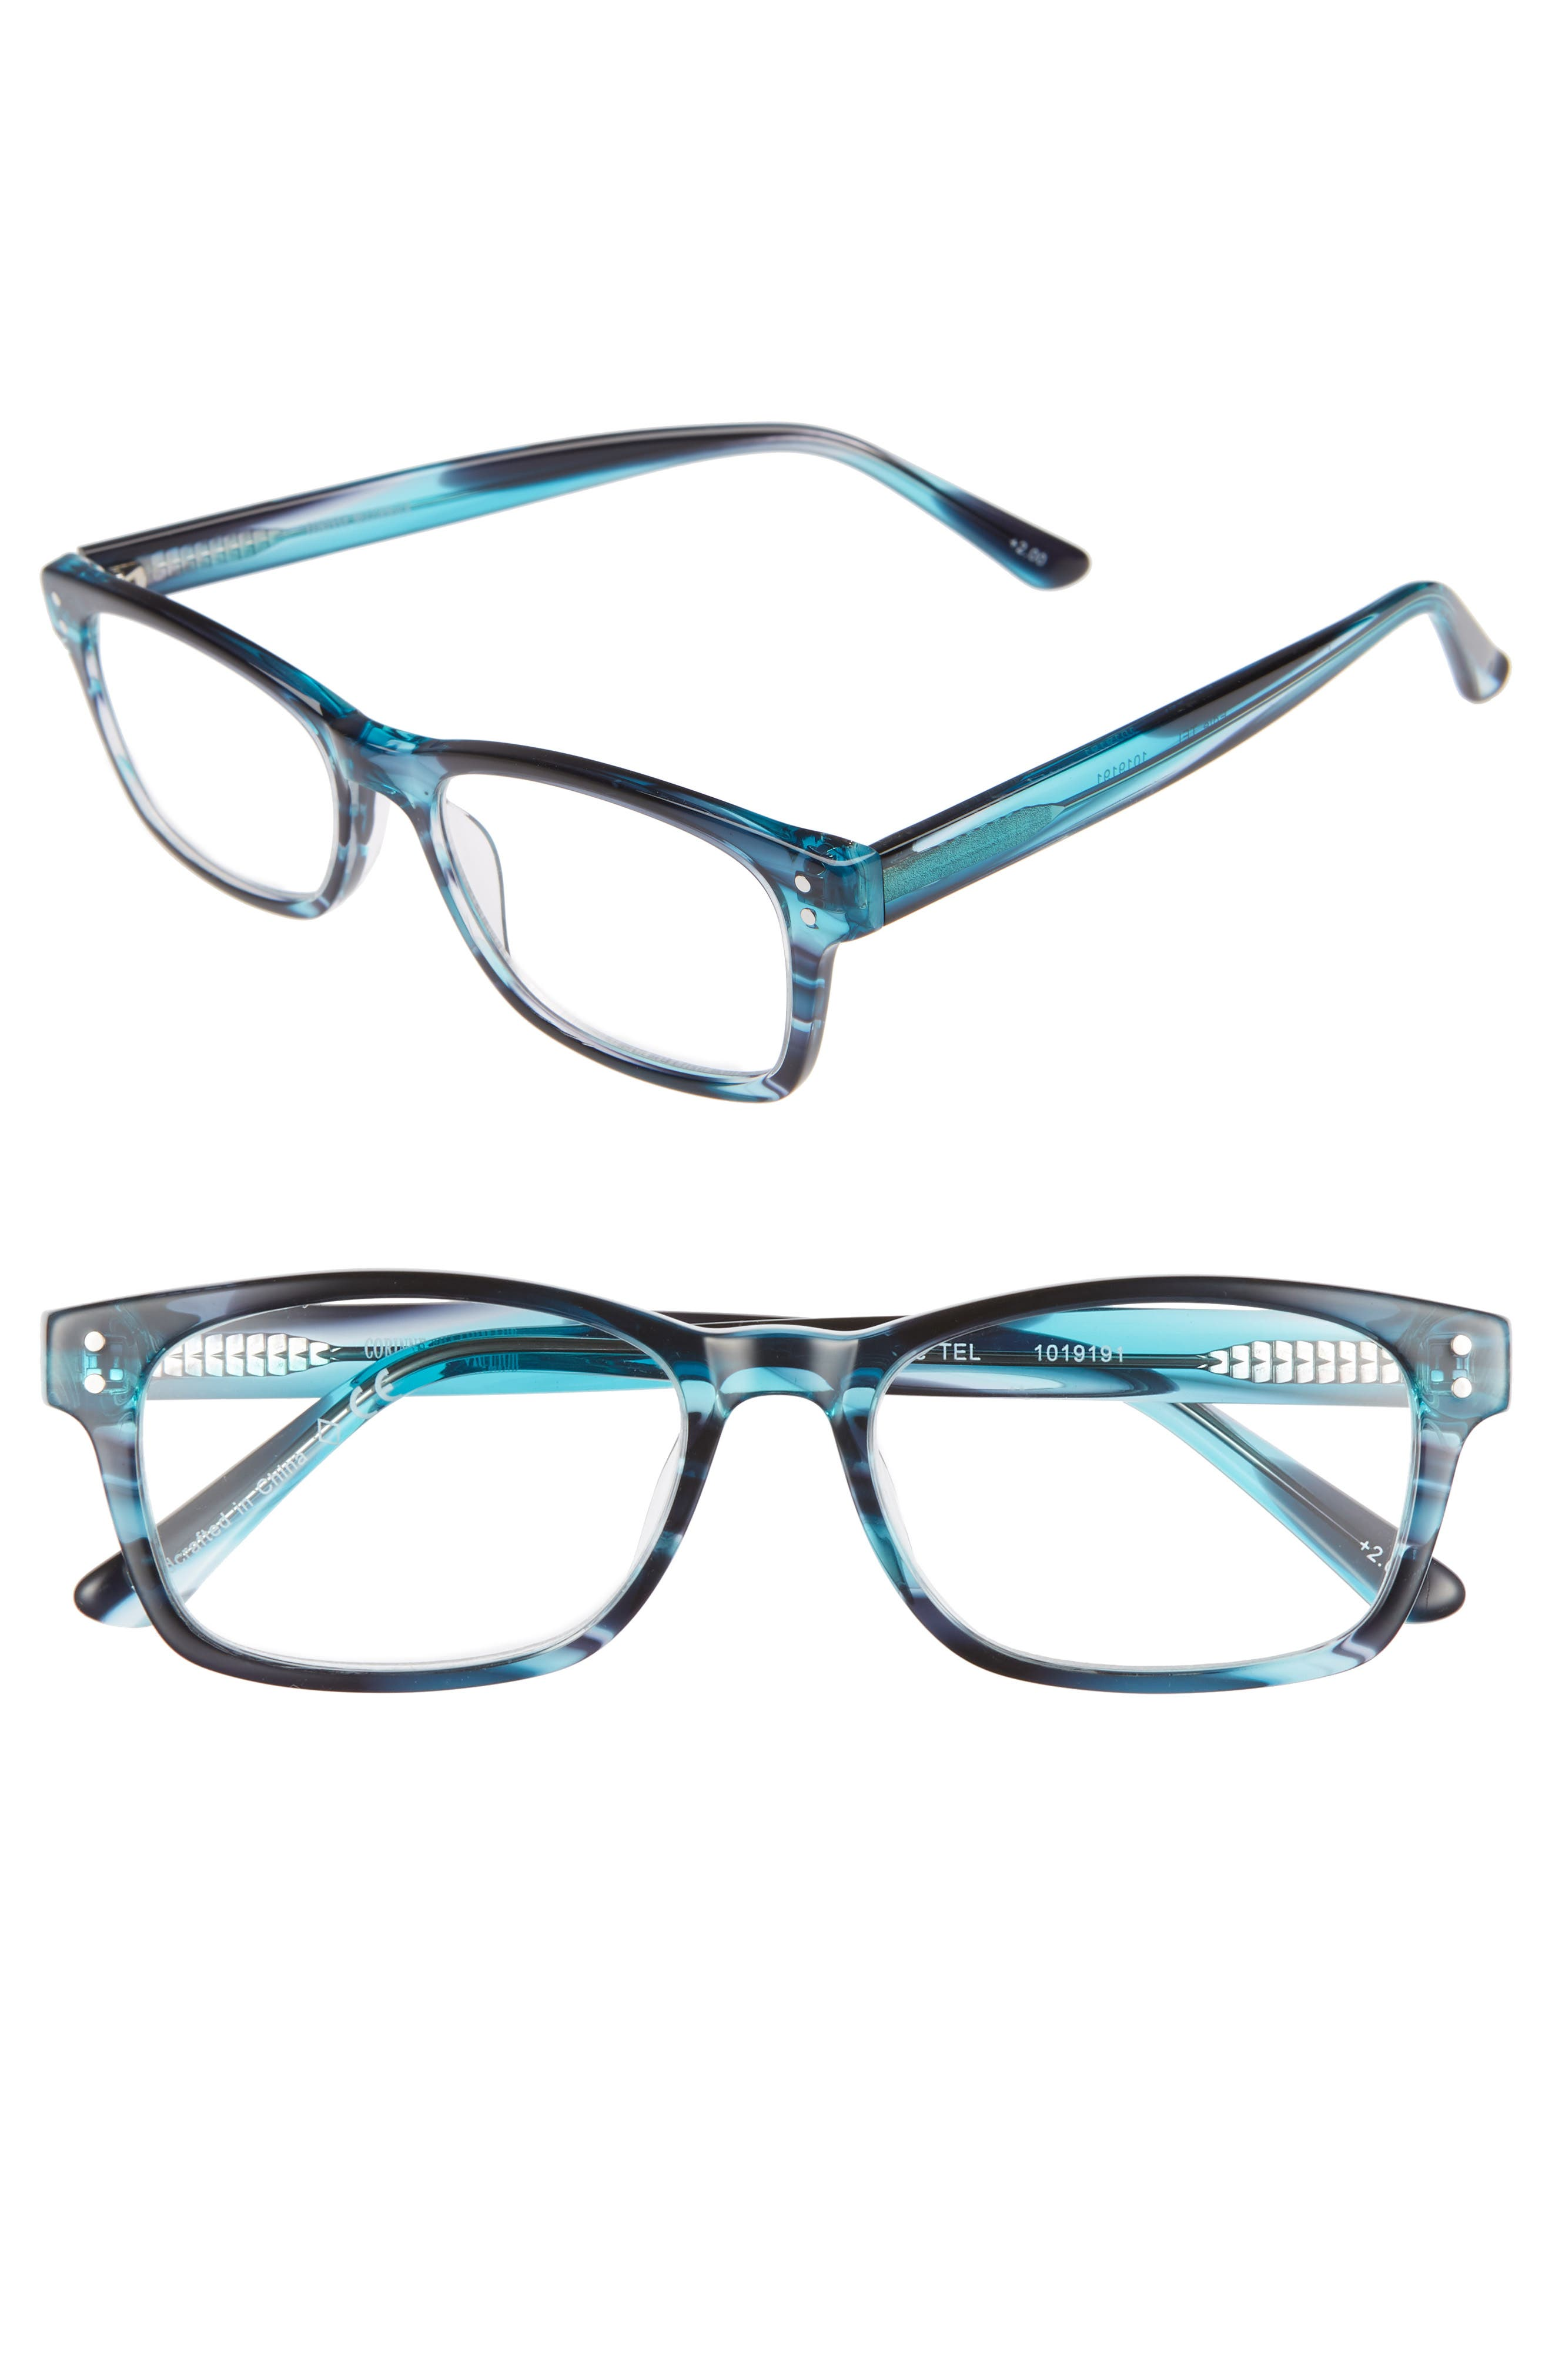 Edie 52mm Reading Glasses,                             Main thumbnail 1, color,                             TEAL BLUE